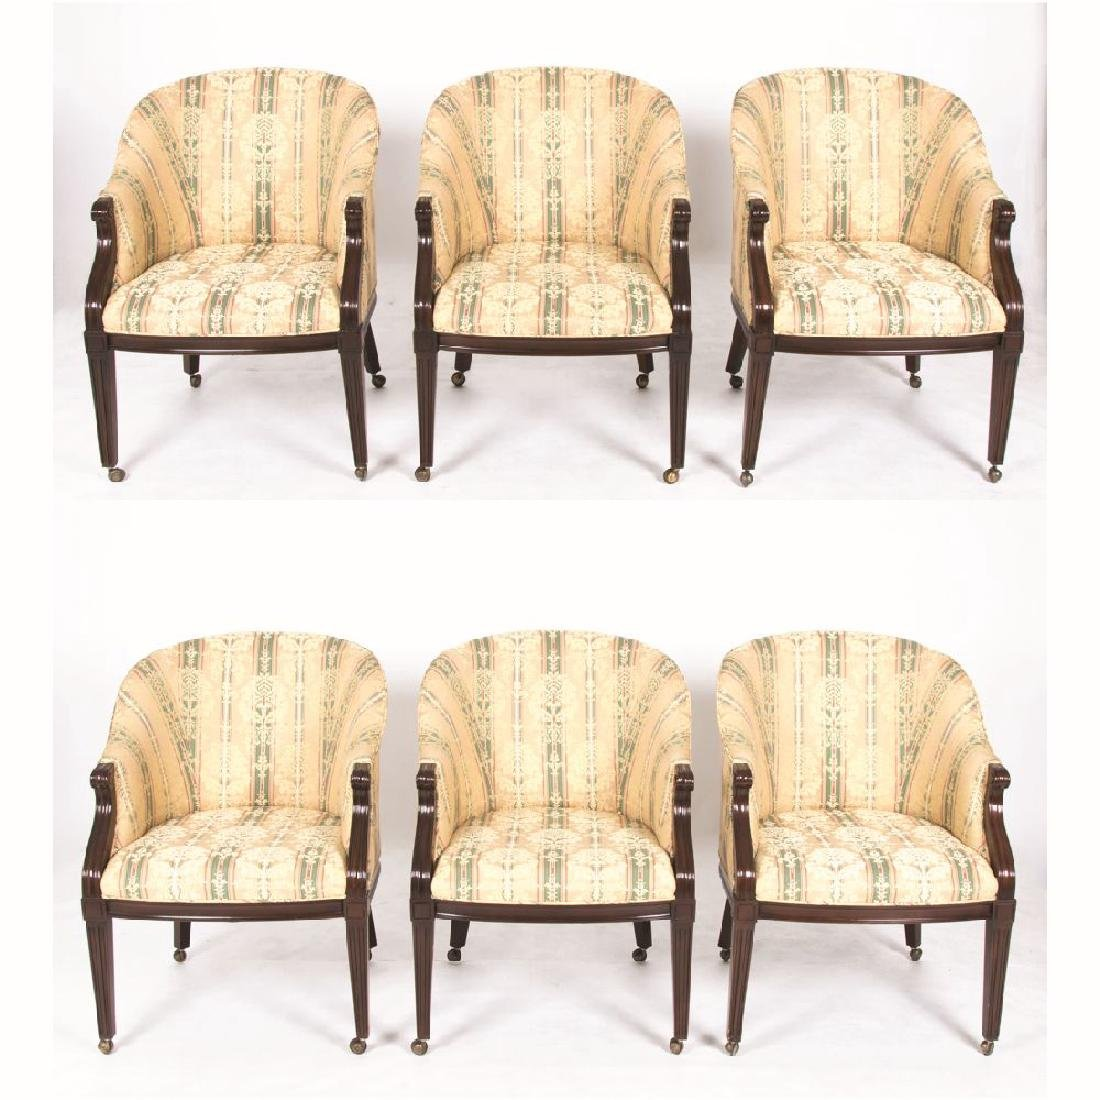 A Set of Six Baker Furniture Regency Style Damask